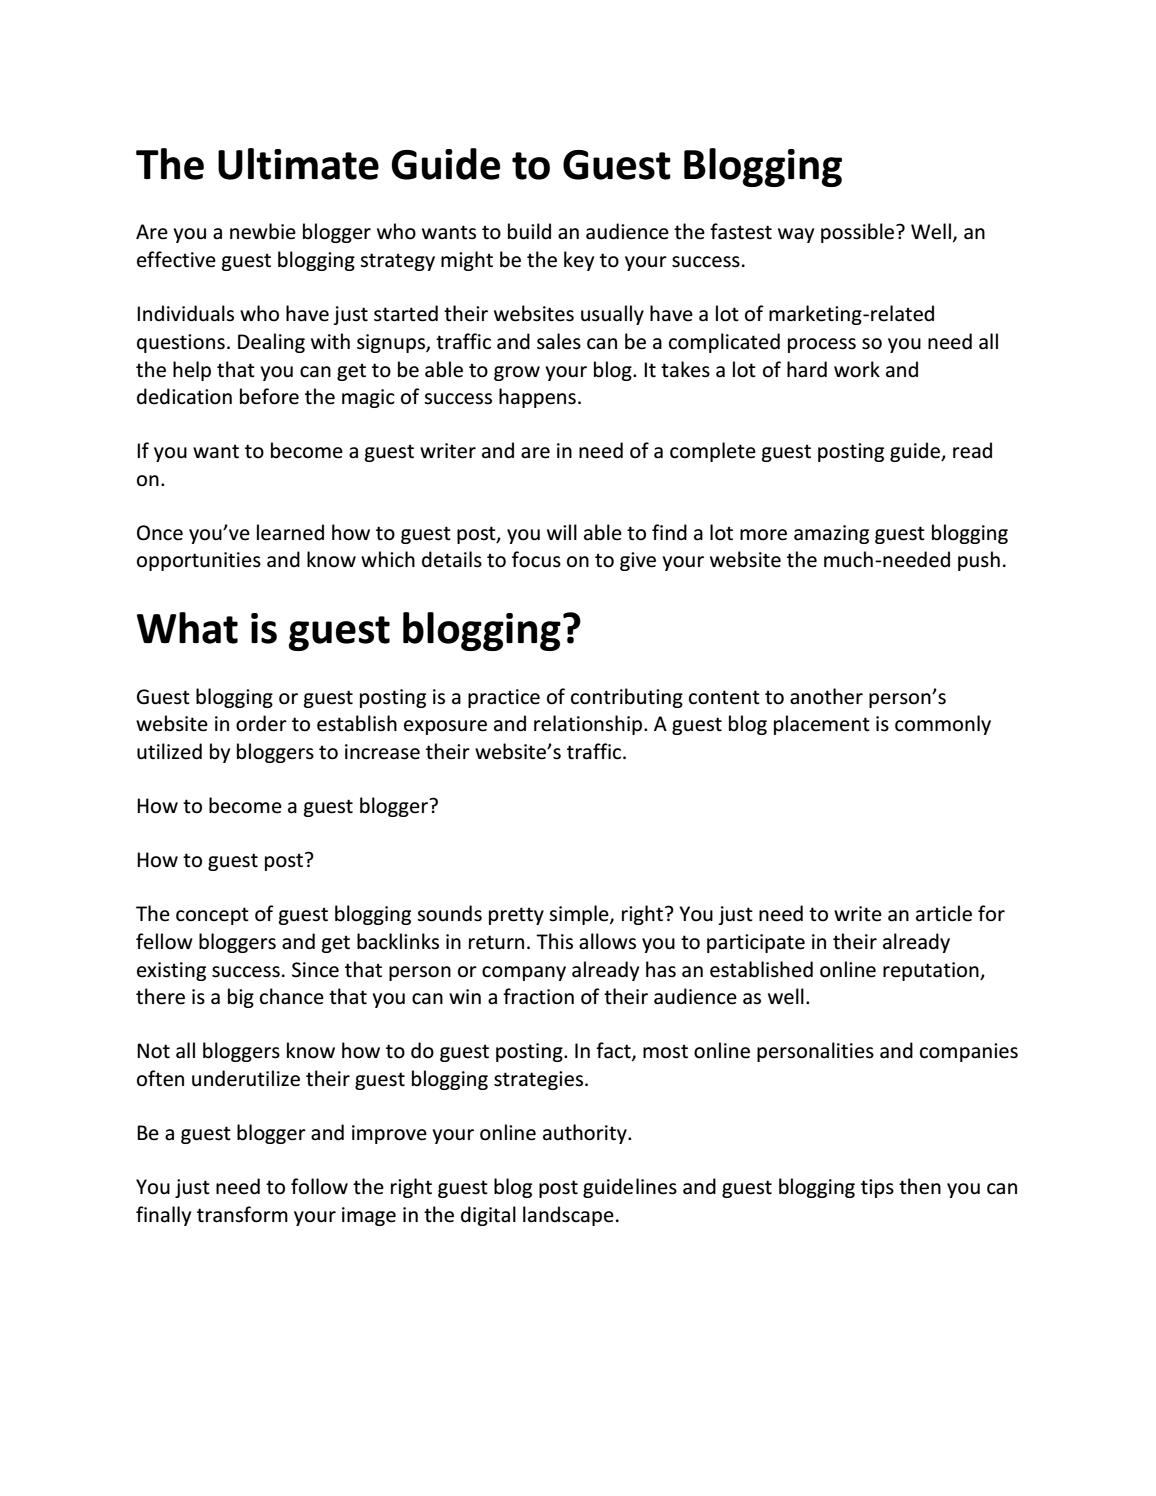 THE ULTIMATE GUIDE TO GUEST BLOGGING by yesmethod18 - issuu